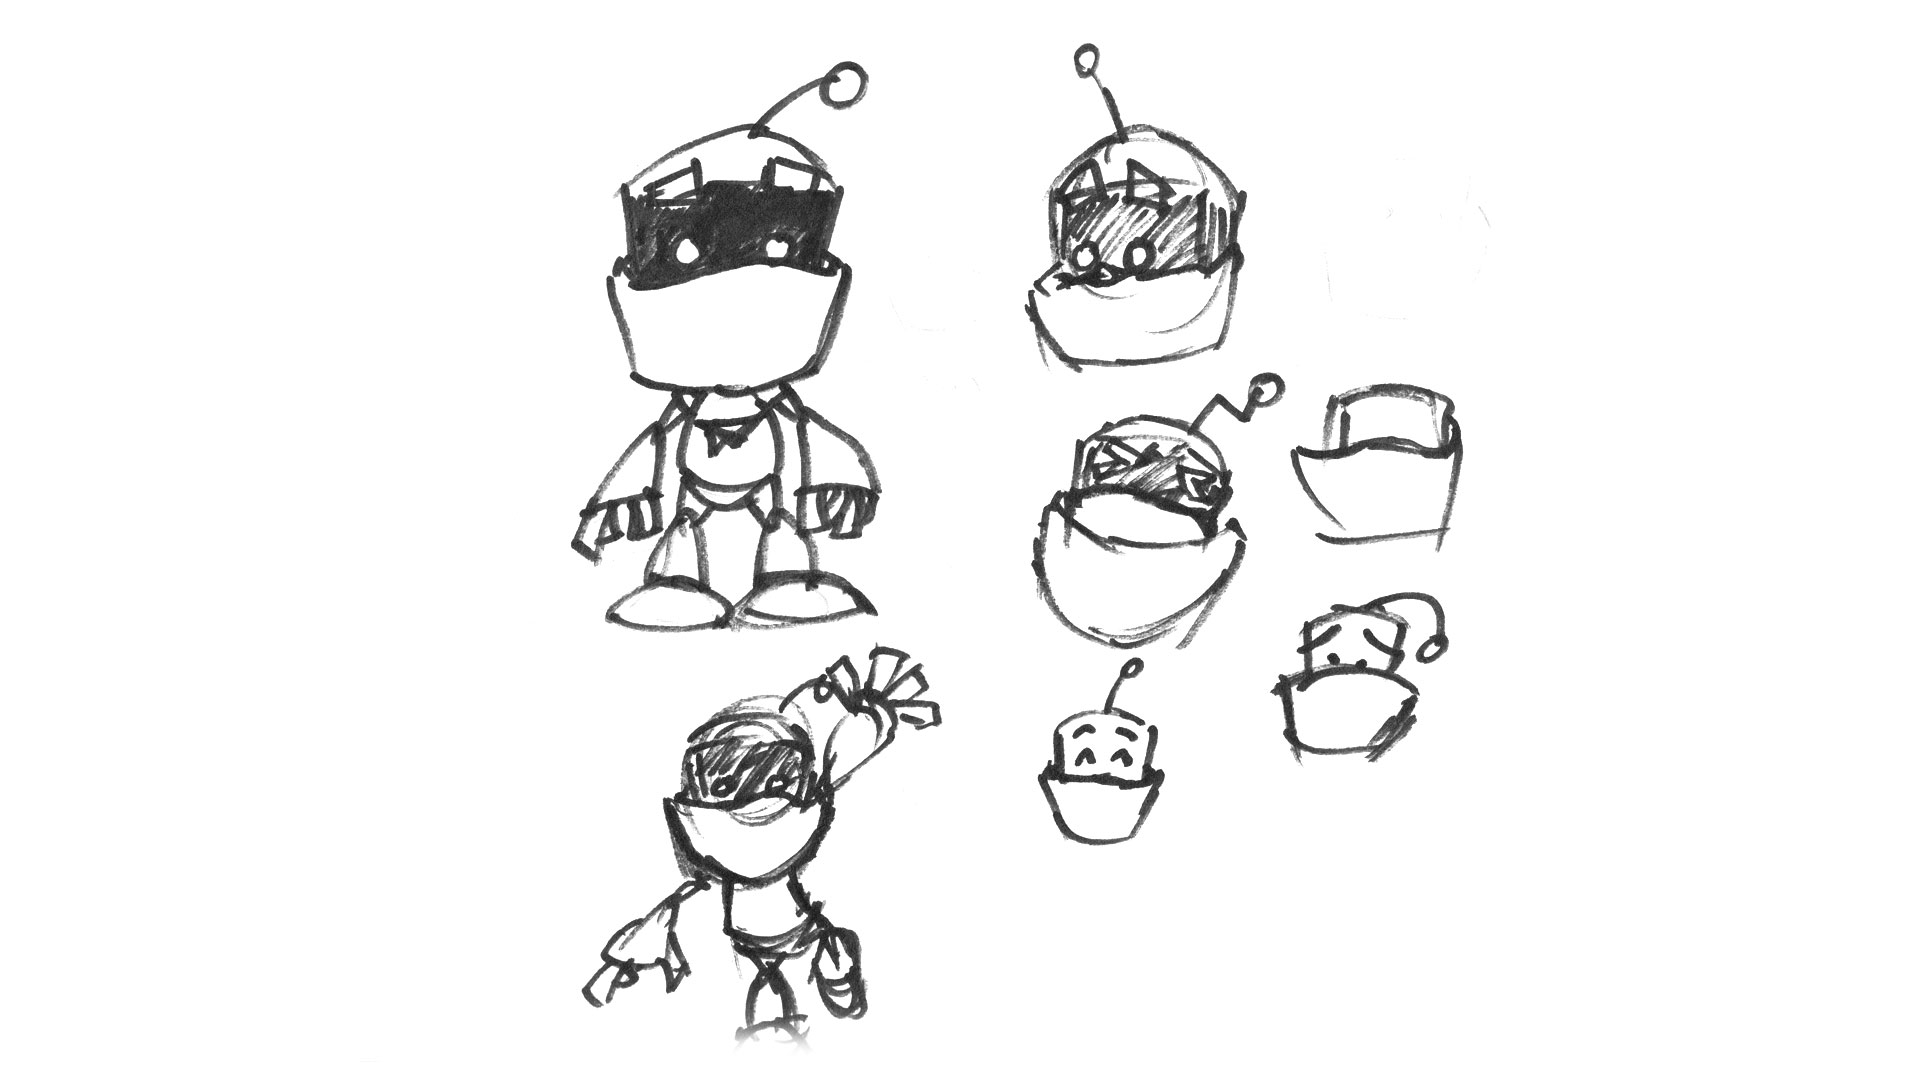 A collection of Customer.io robot mascot drawings.